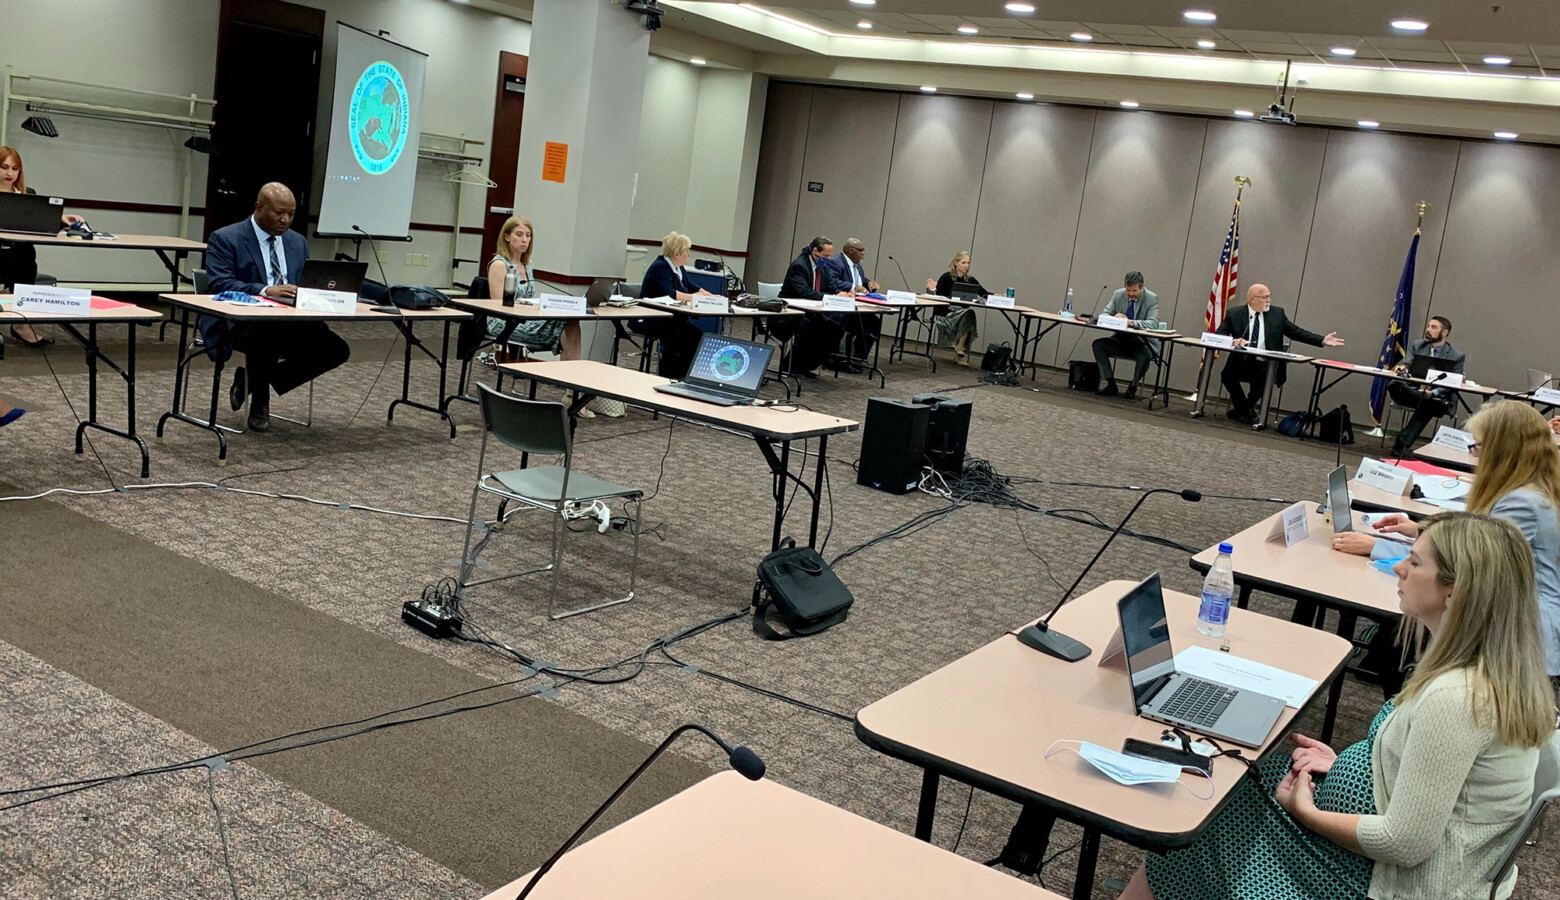 The Indiana State Budget Committee meets in person while observing proper social distancing guidelines. (Brandon Smith/IPB News)